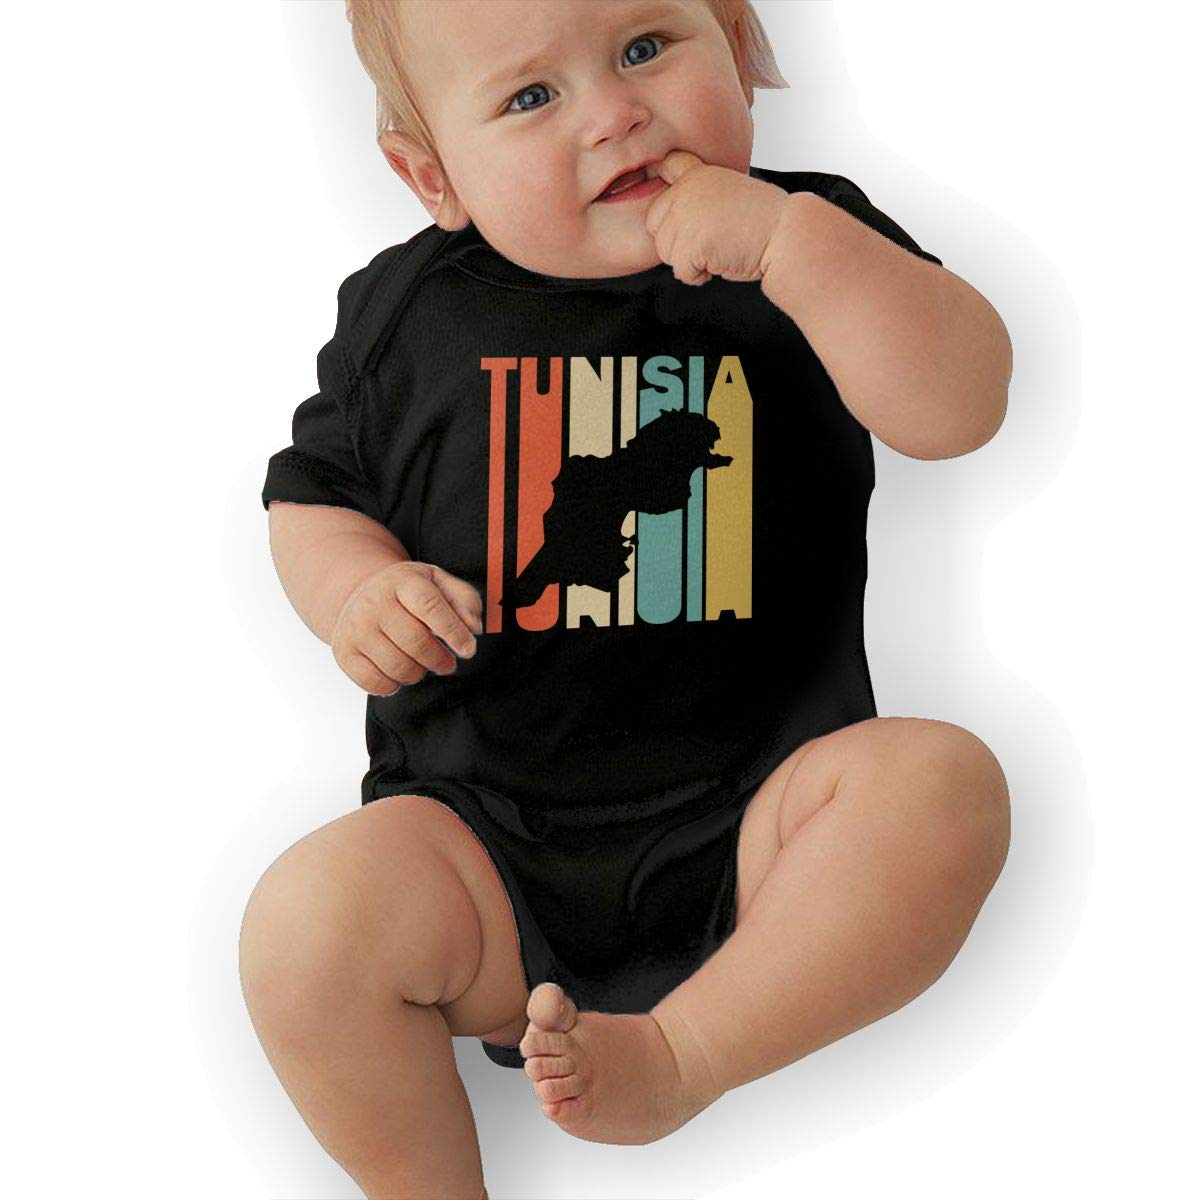 Short Sleeve Cotton Bodysuit for Baby Boys and Girls Cute Retro Style Tunisia Silhouette Jumpsuit